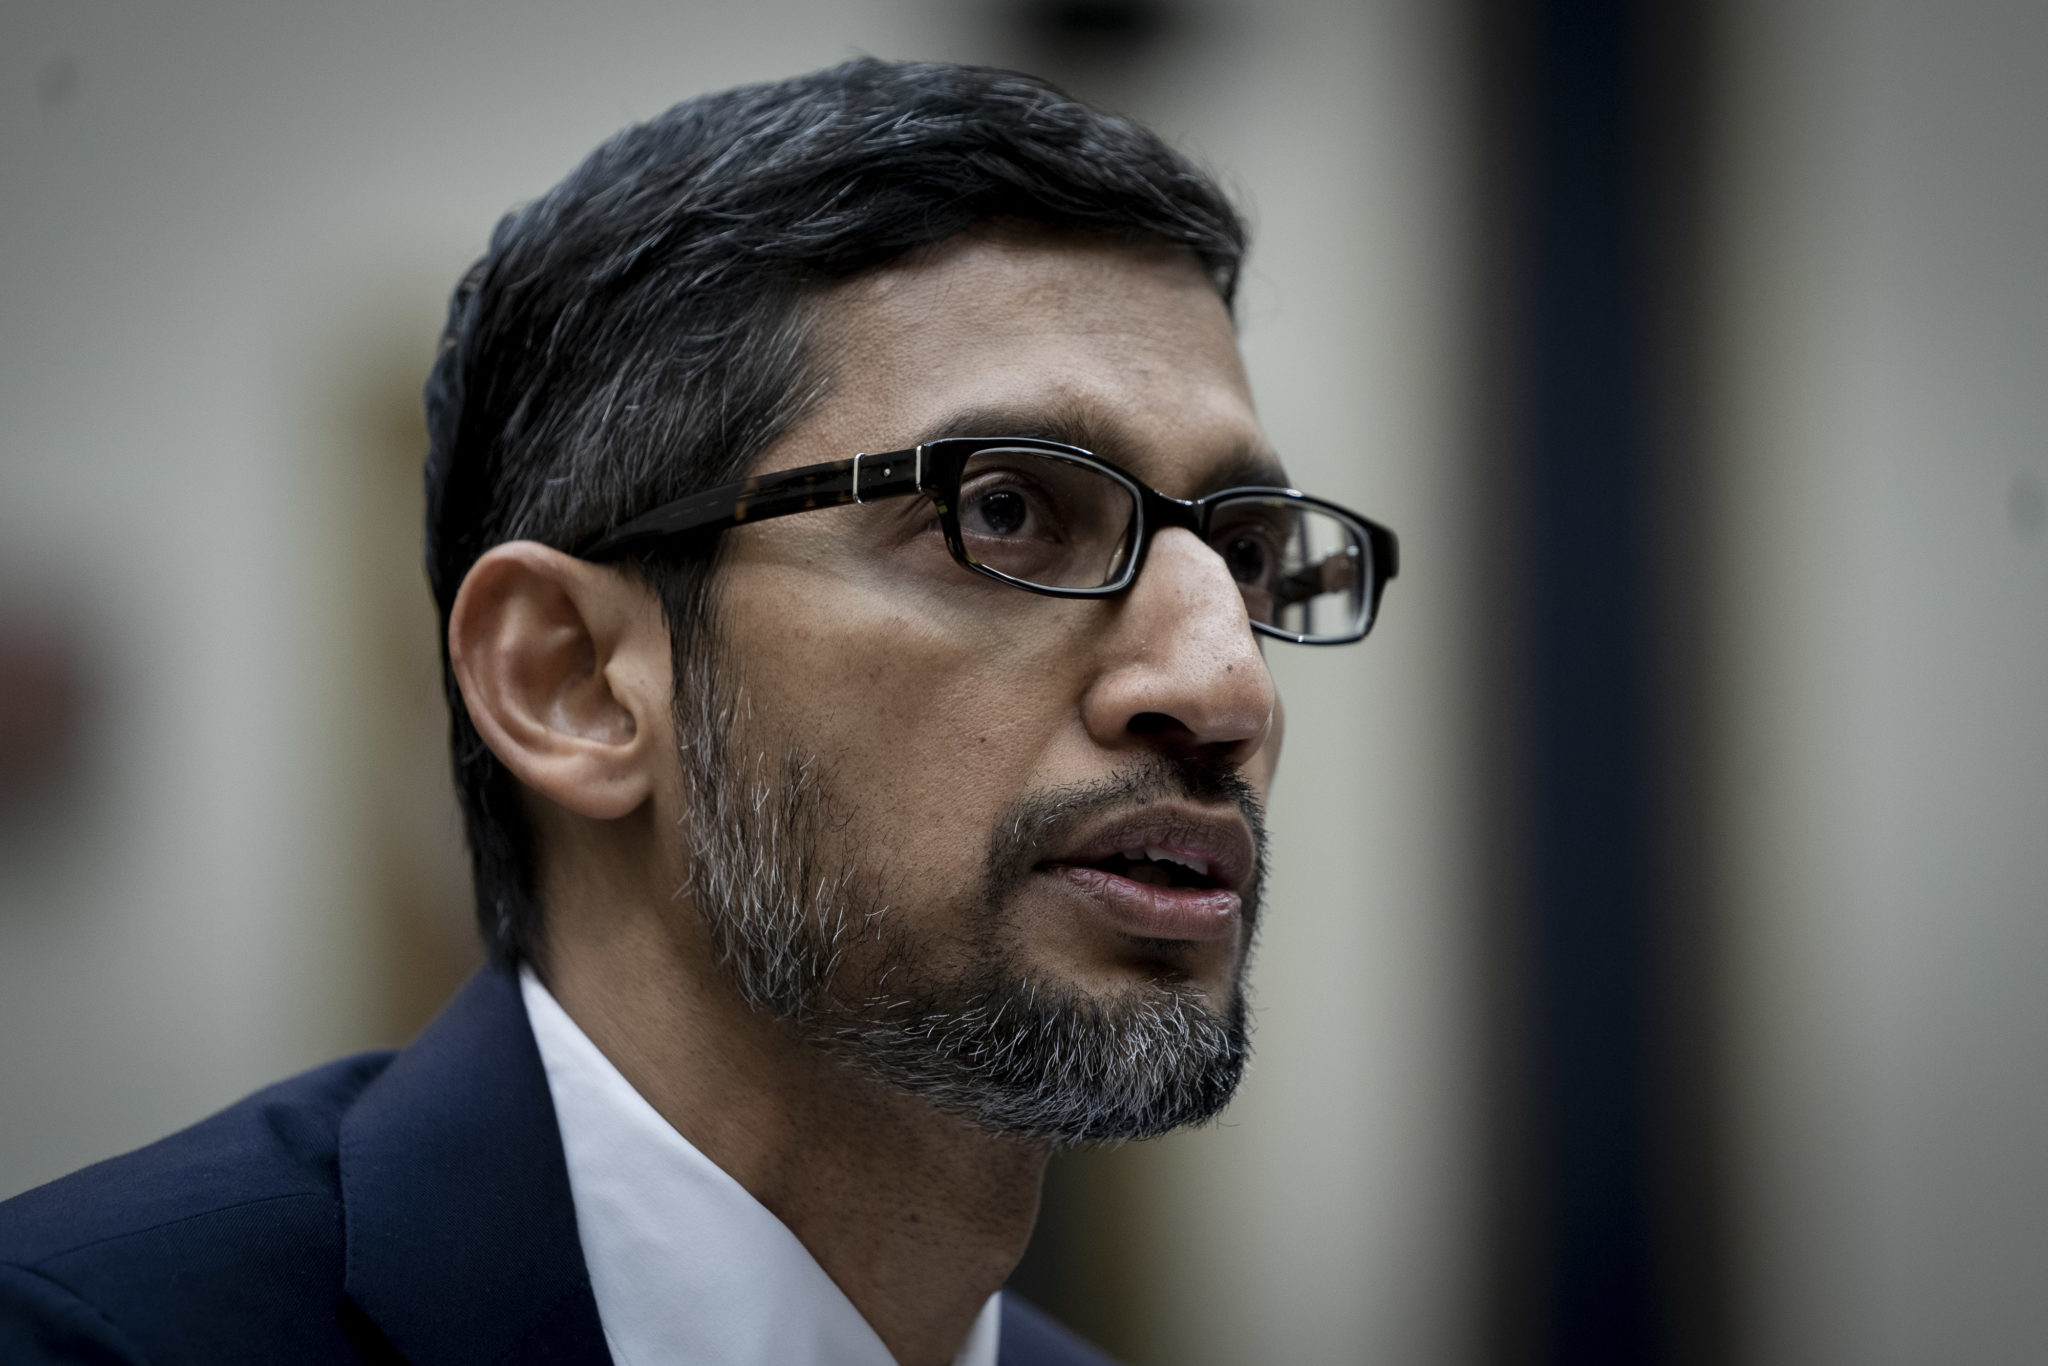 Google CEO Sundar Picha testifies before the House Judiciary Committee, Dec. 11, 2018